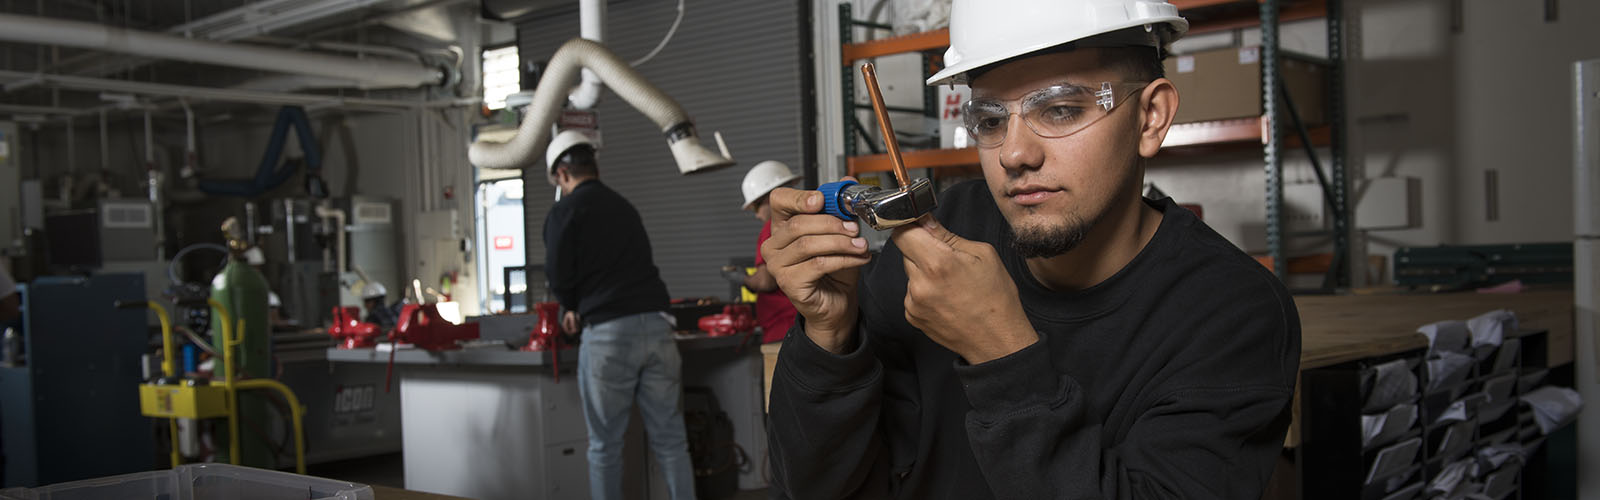 student working in air conditioning